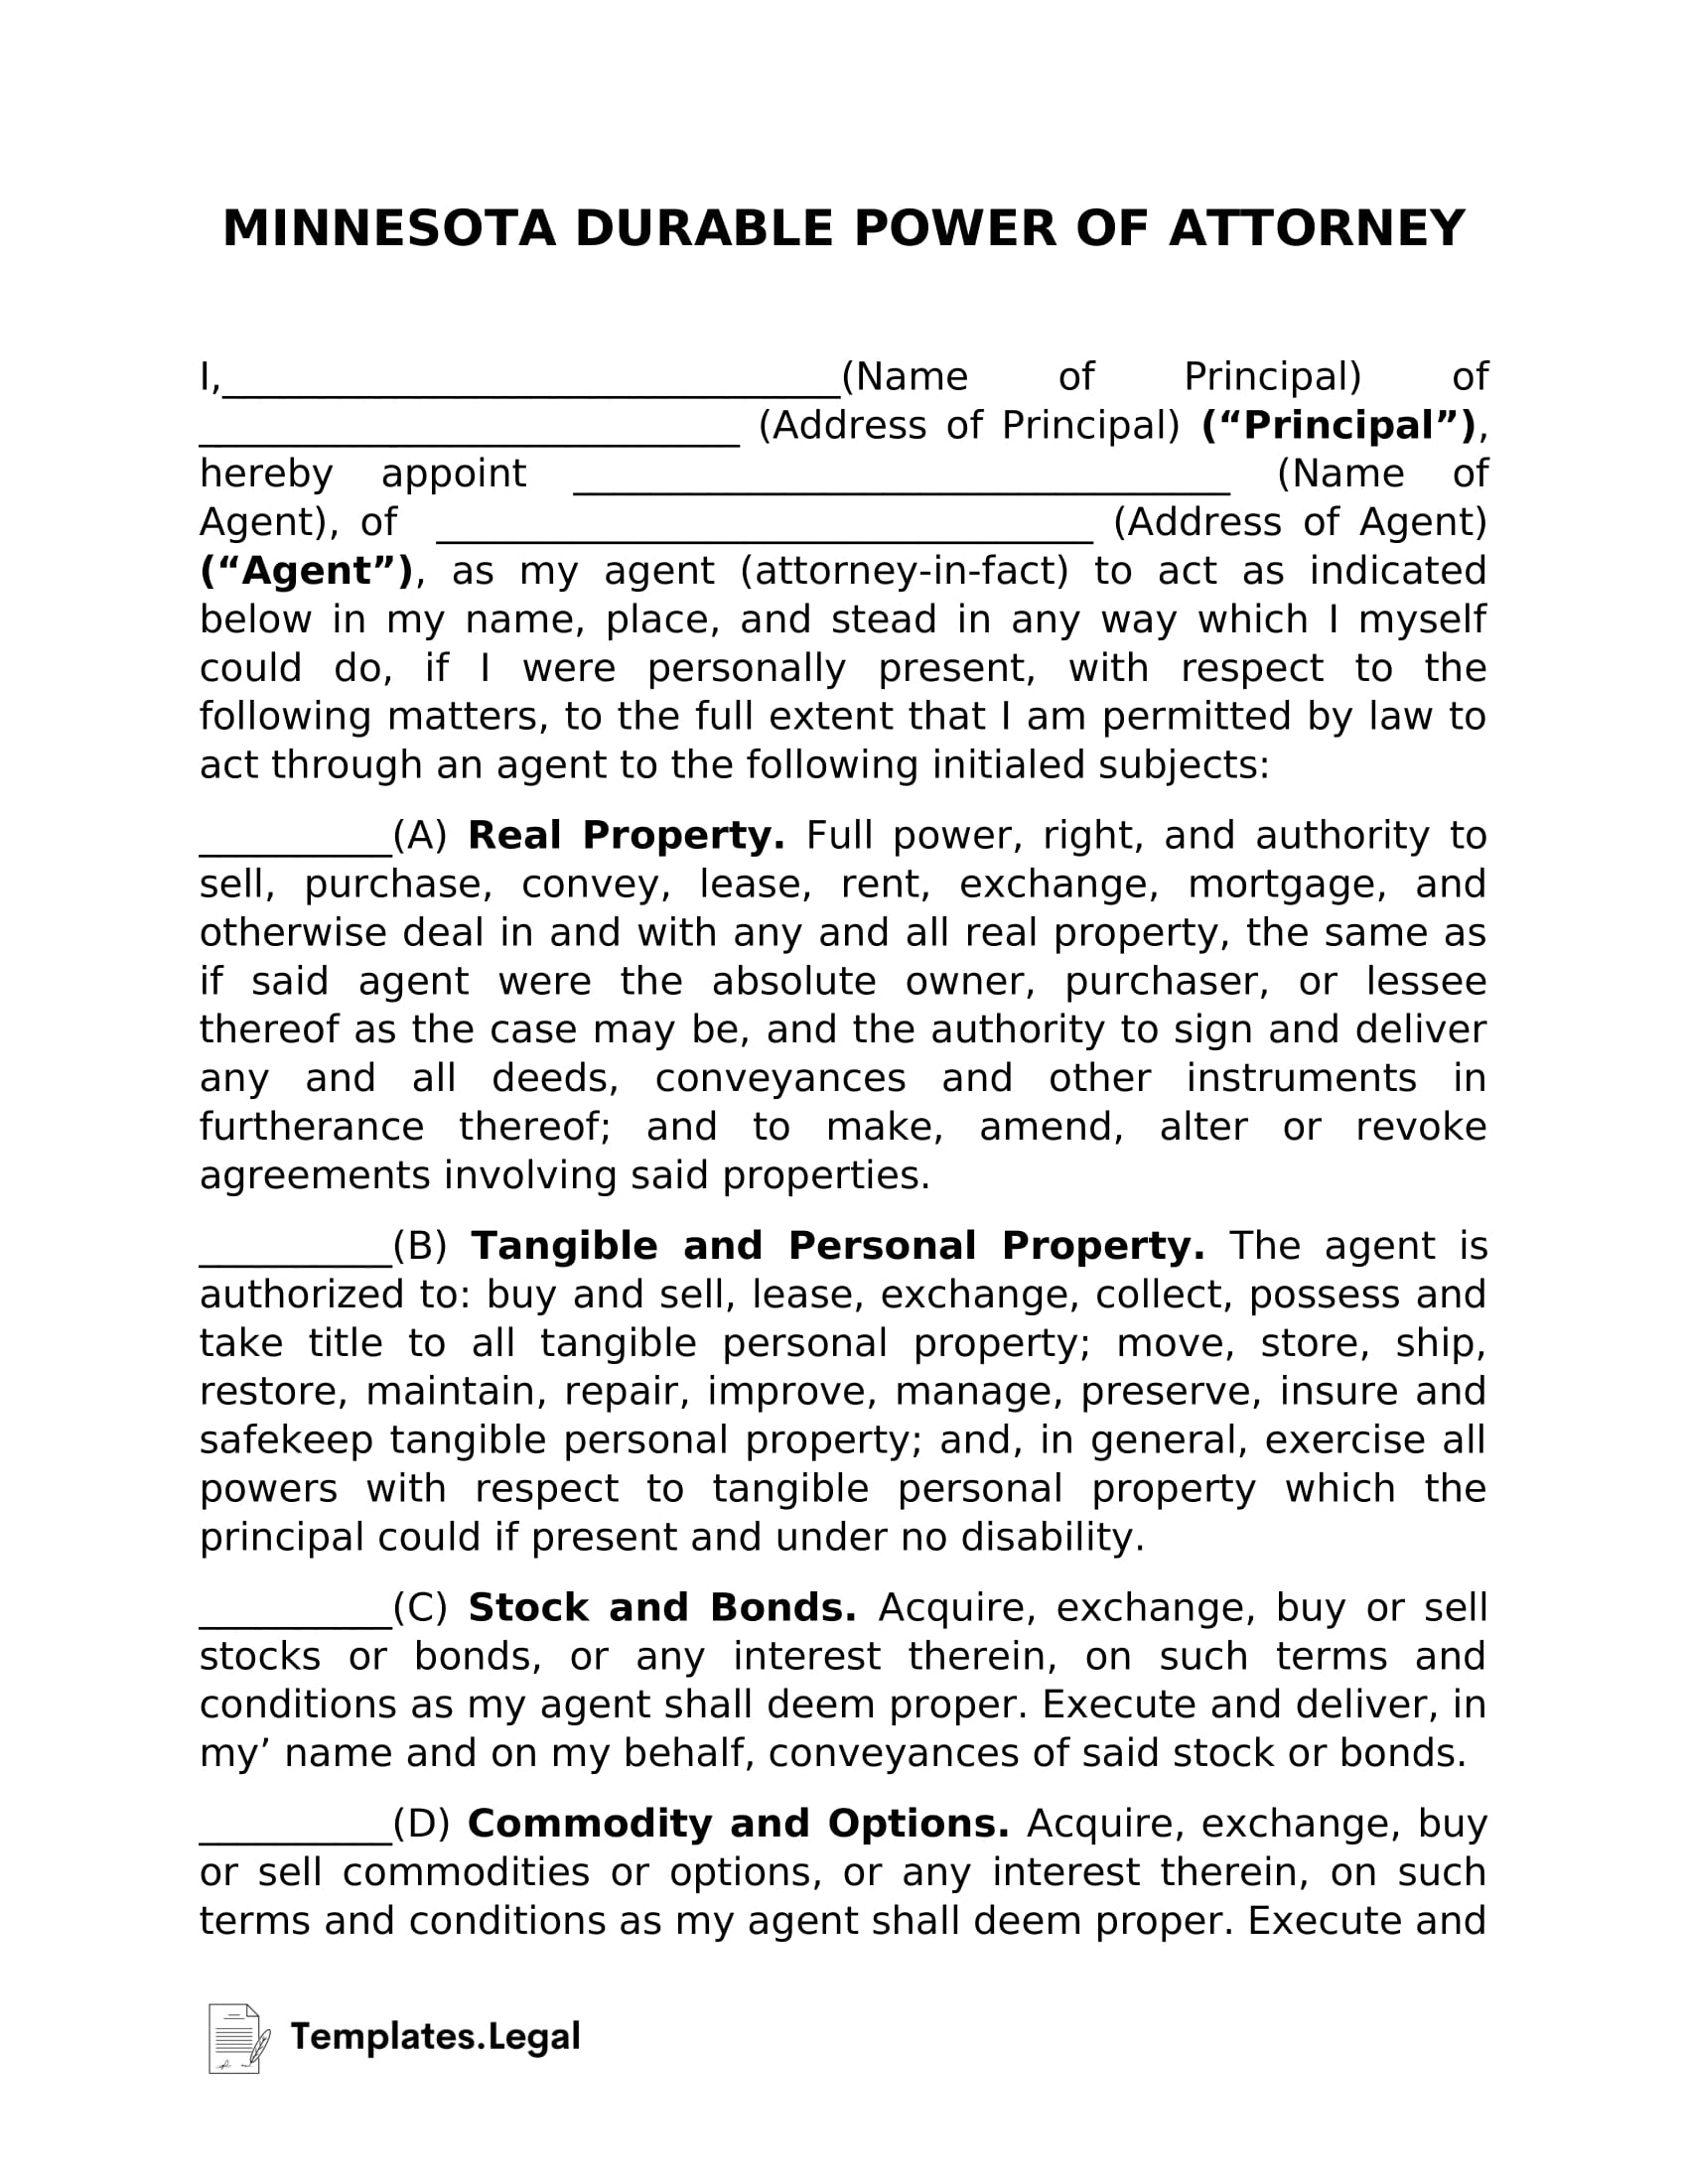 Minnesota Durable Power of Attorney - Templates.Legal